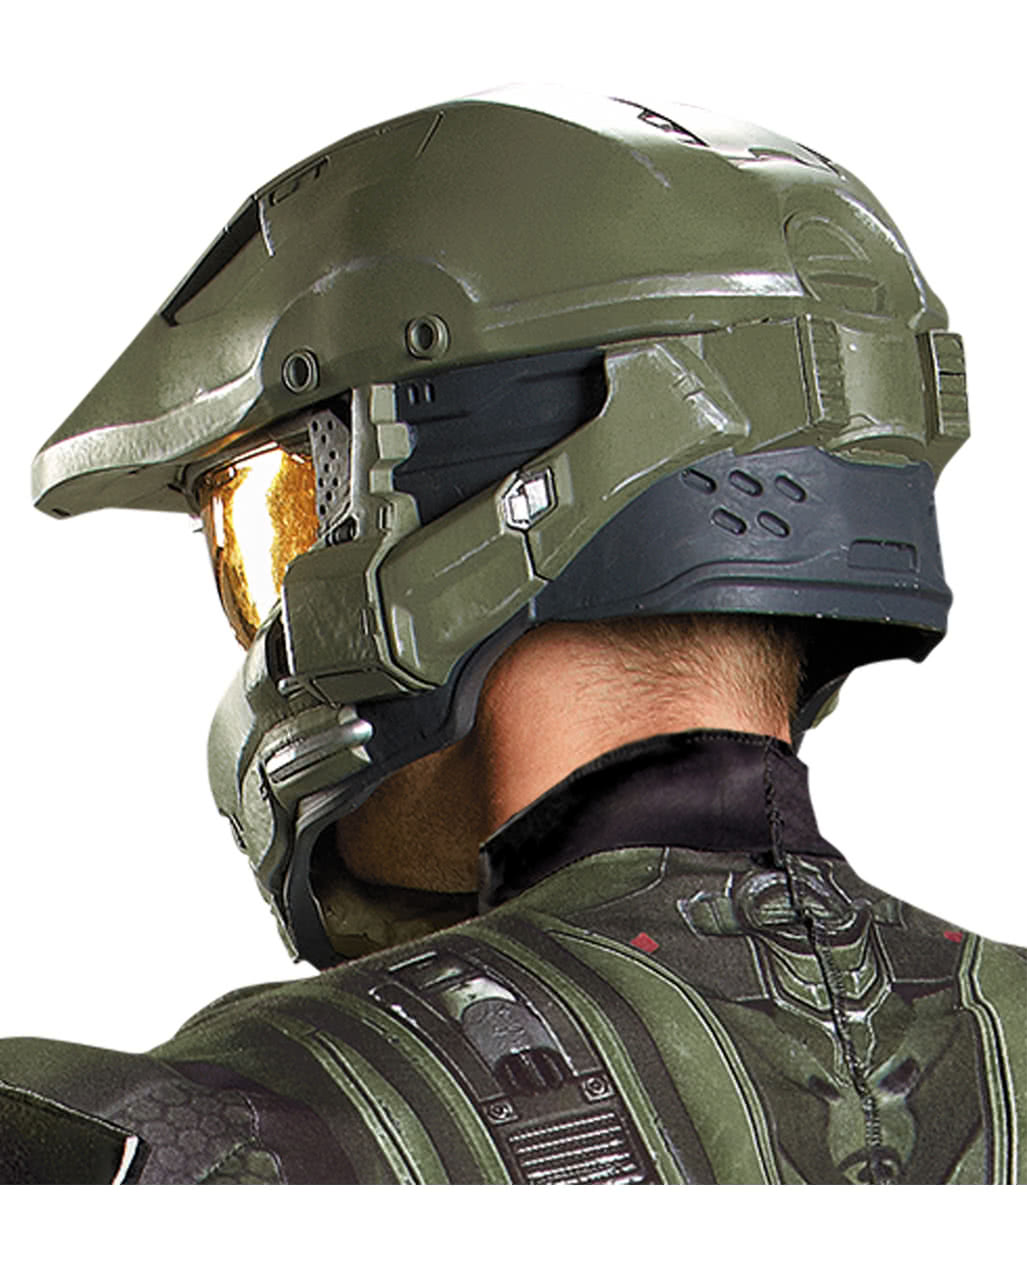 Halo 3 Master Chief Helmet As a costume accessory   horror ...